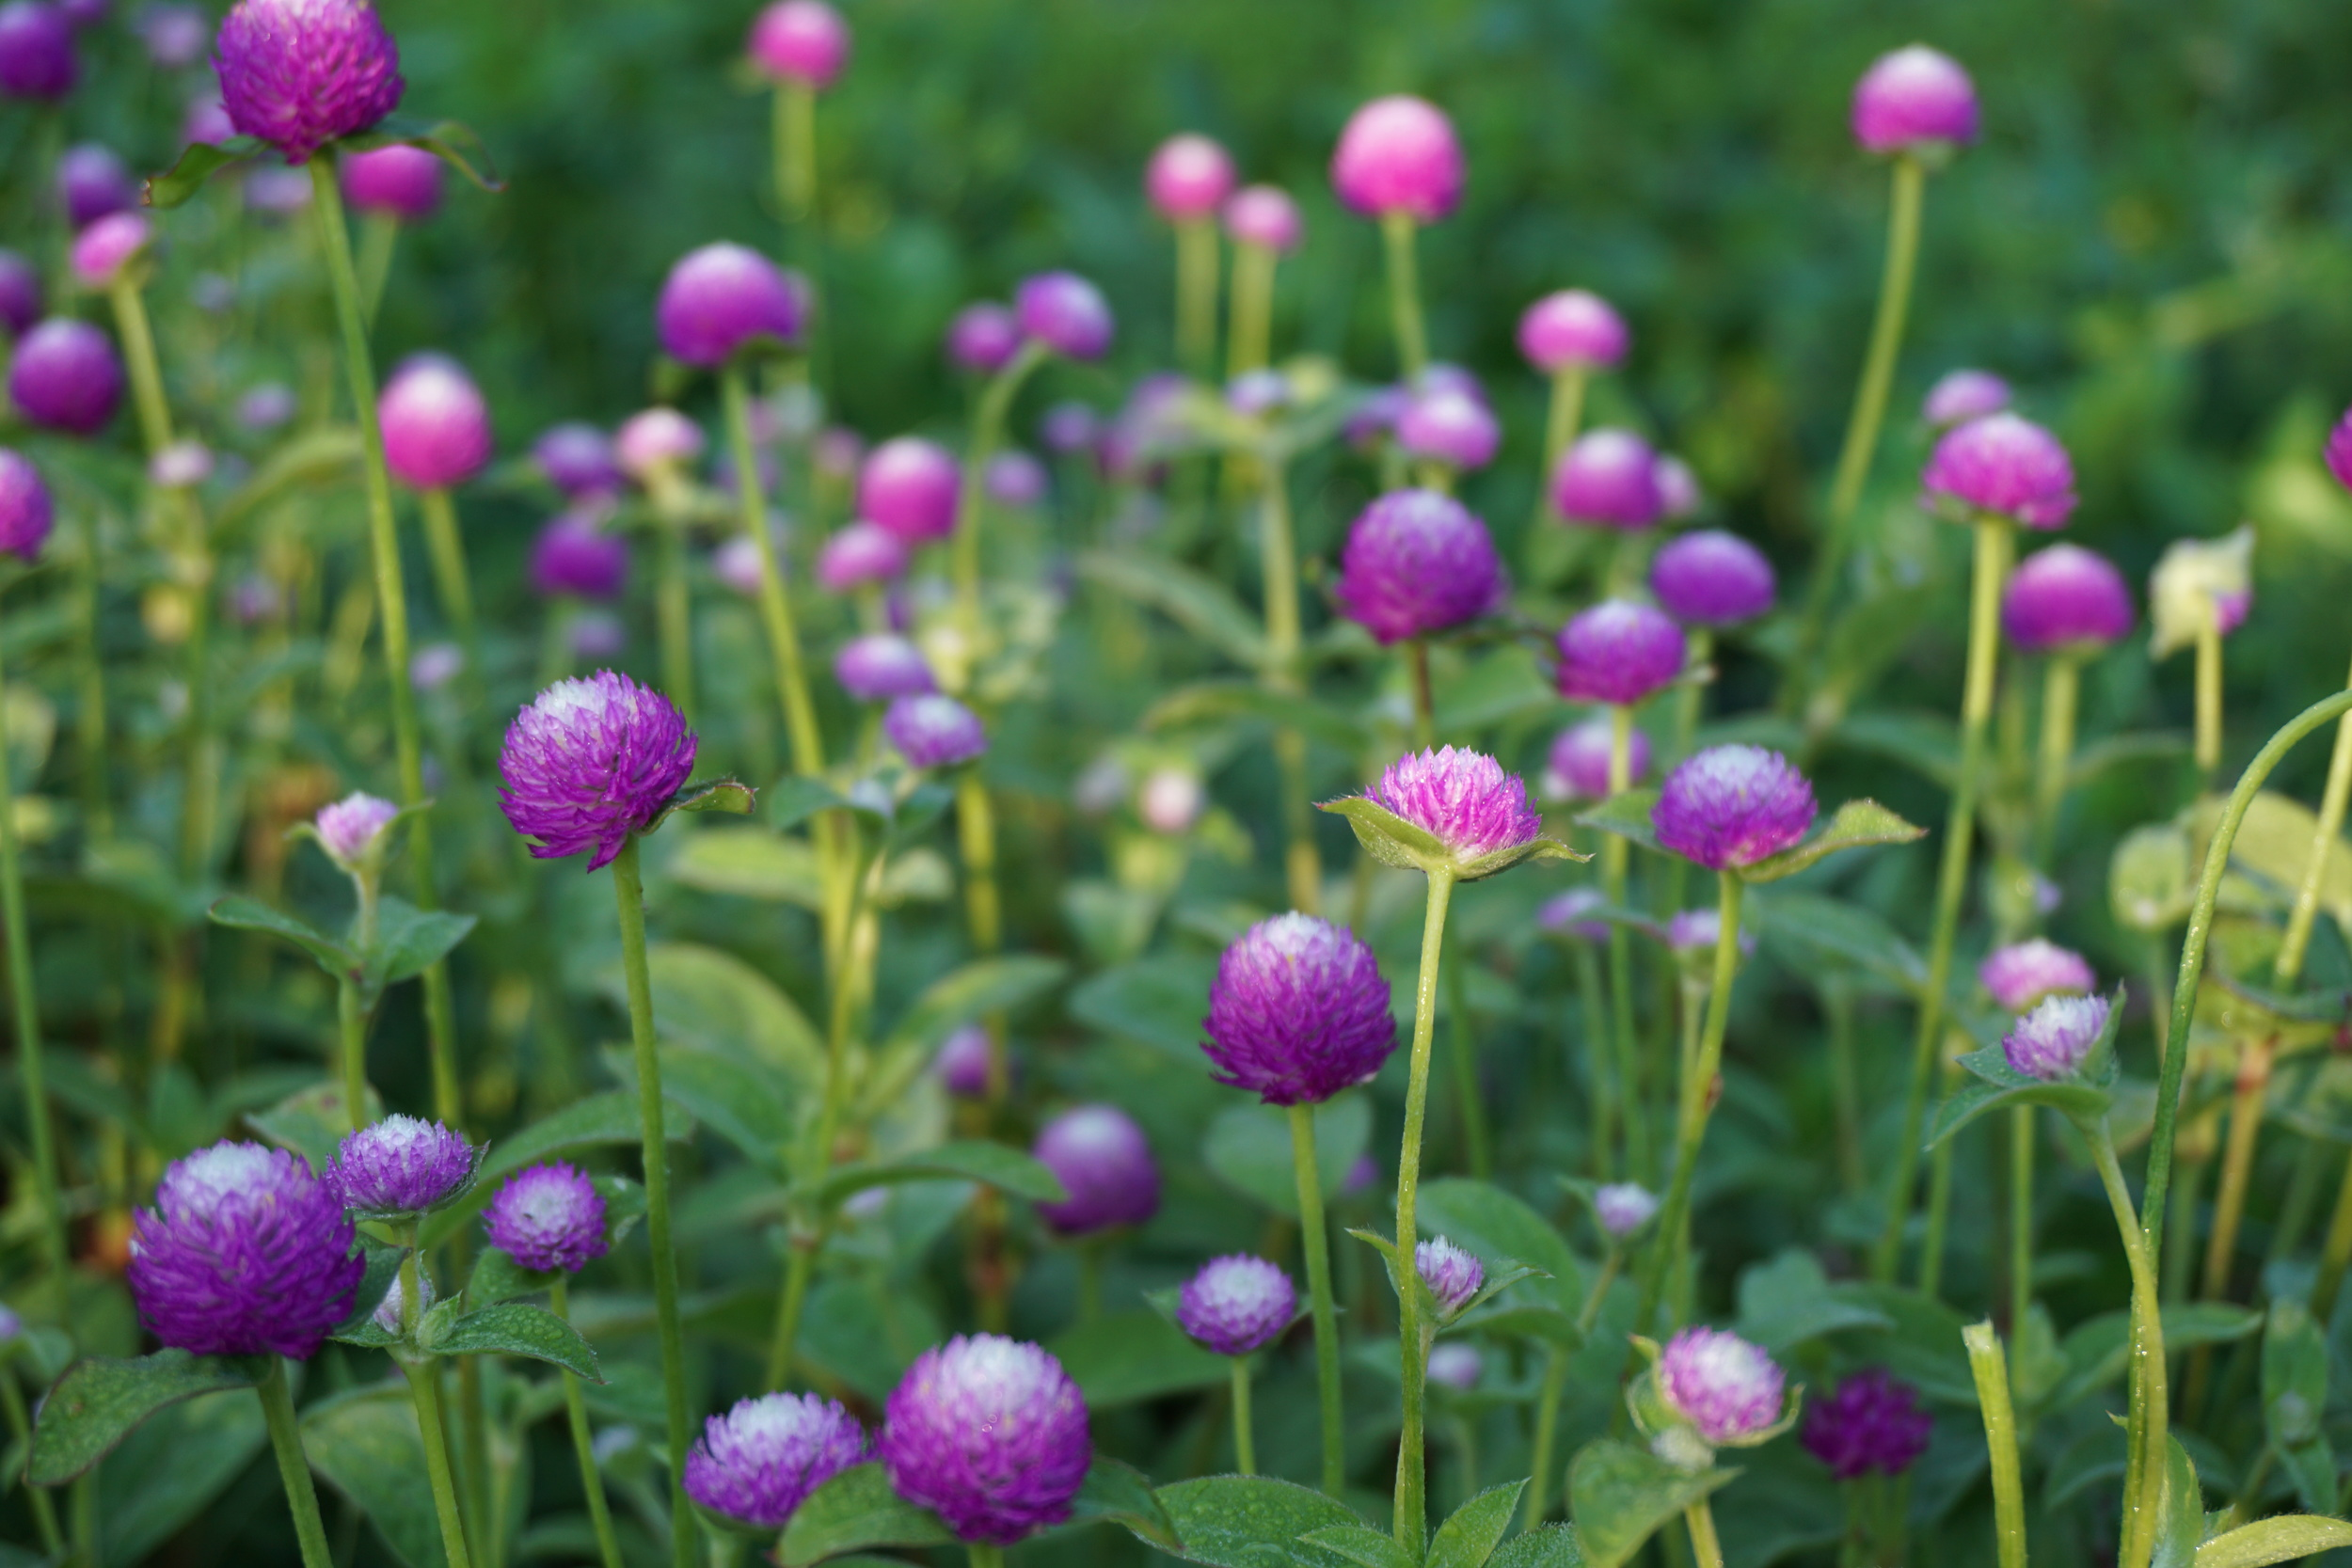 Gomphrena. The blooms make a lovely, relaxing herbal tea.